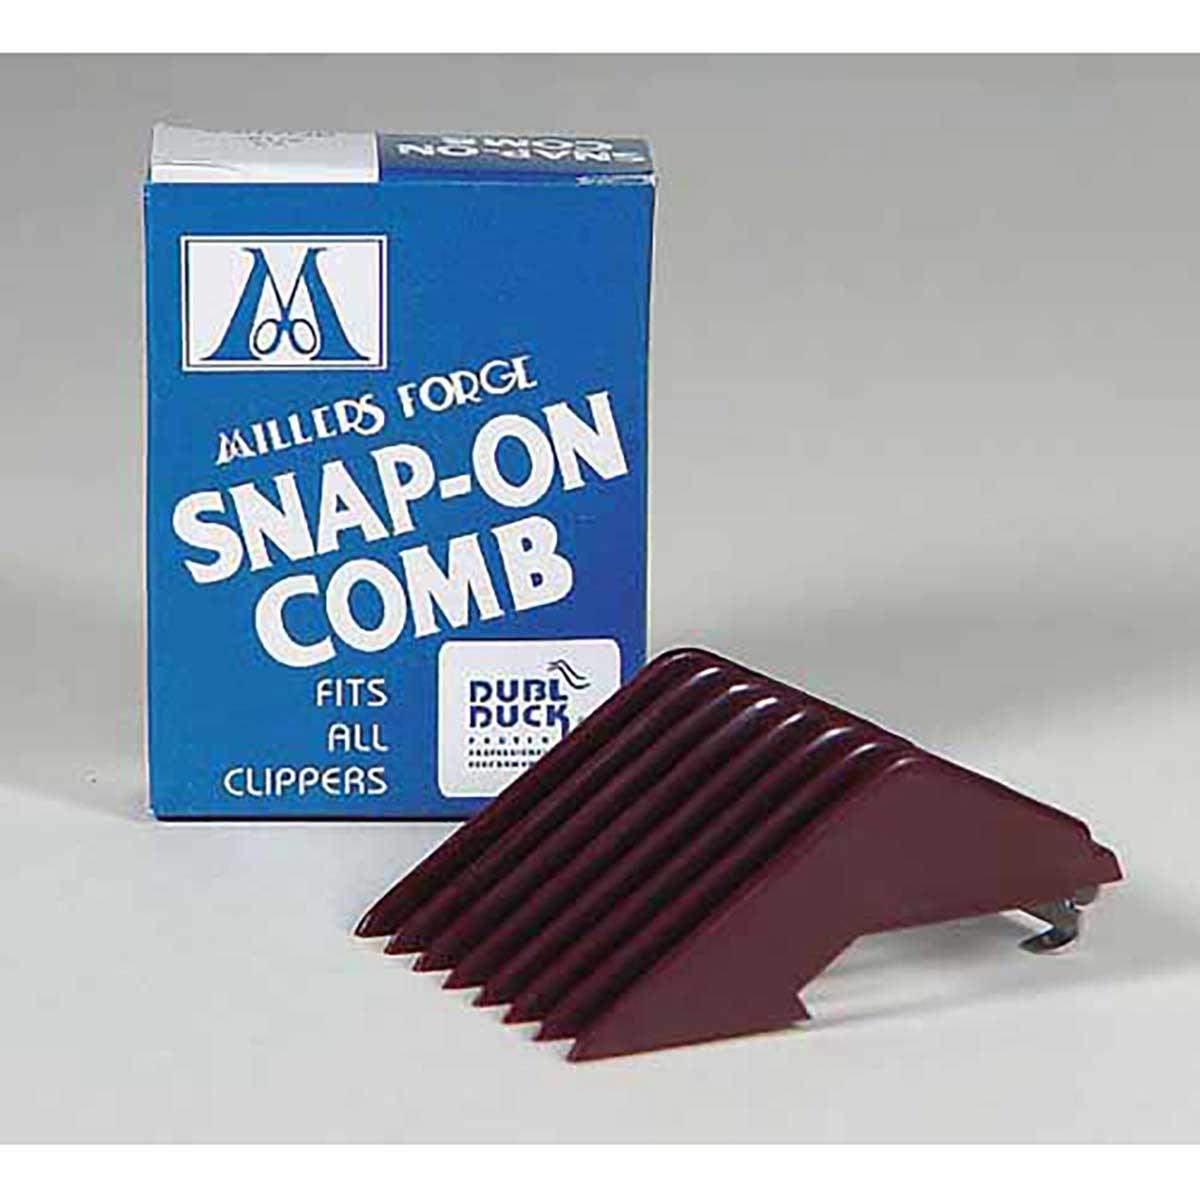 Professional Groomer Millers Forge Snap-On Clipper Comb - Size 1.5 Cuts 1/12 inch